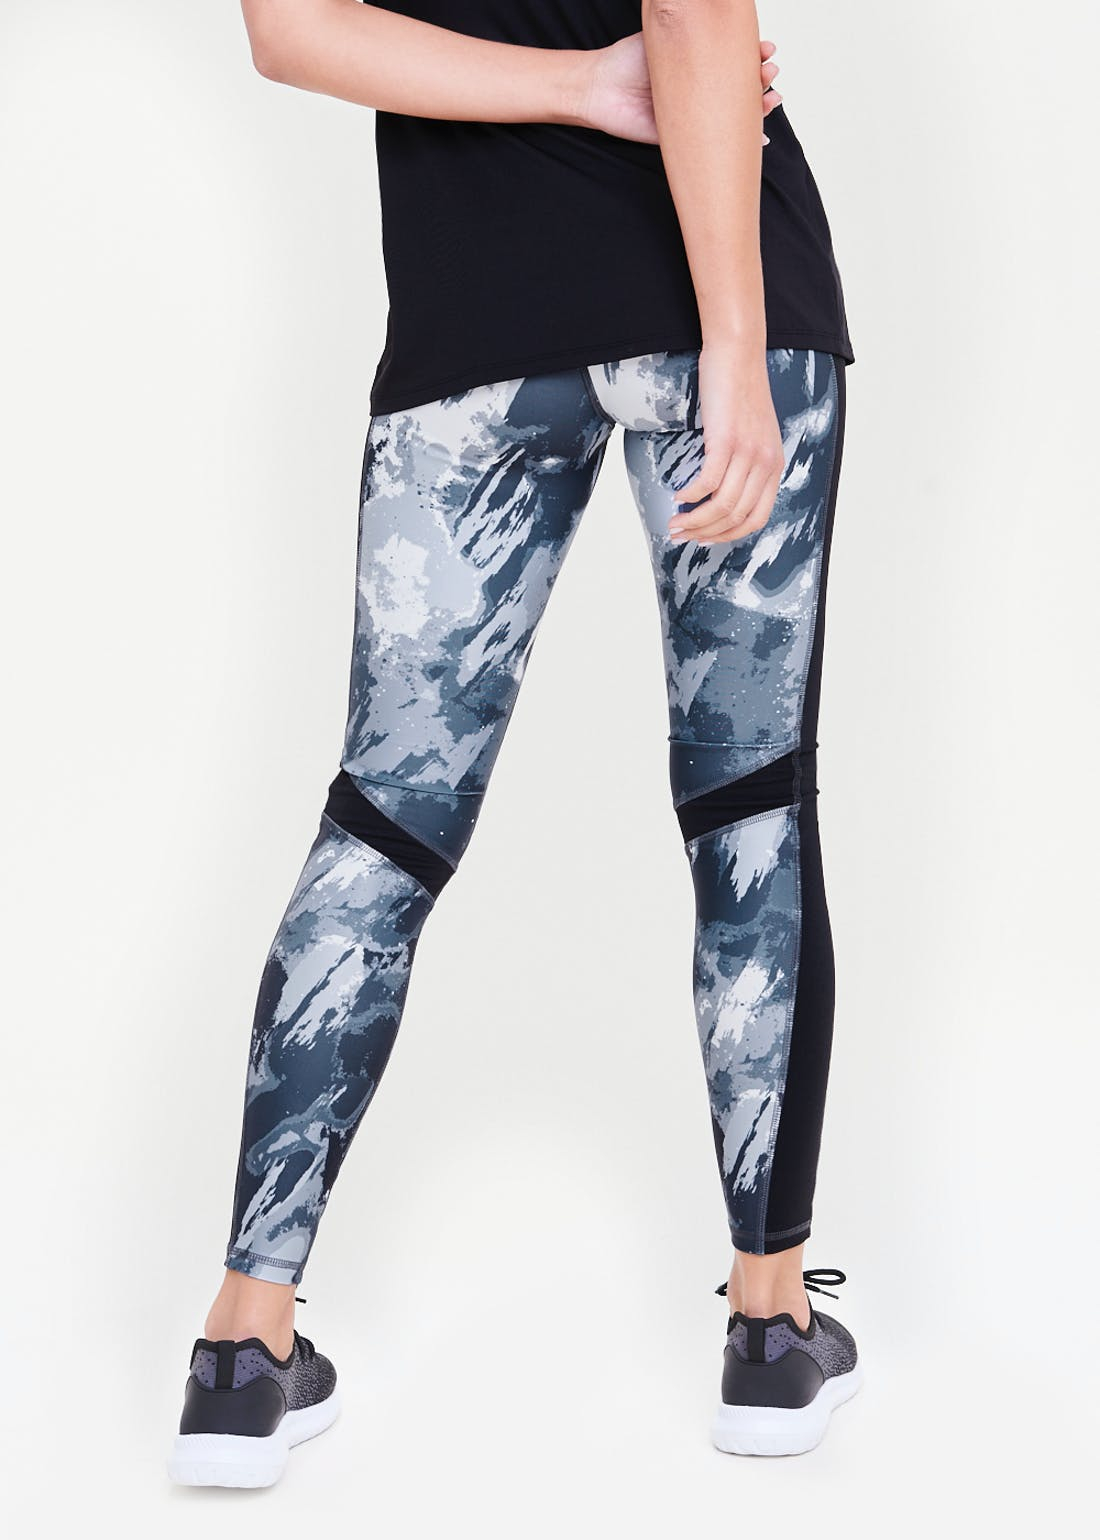 Souluxe Grey Smudge Print Gym Leggings